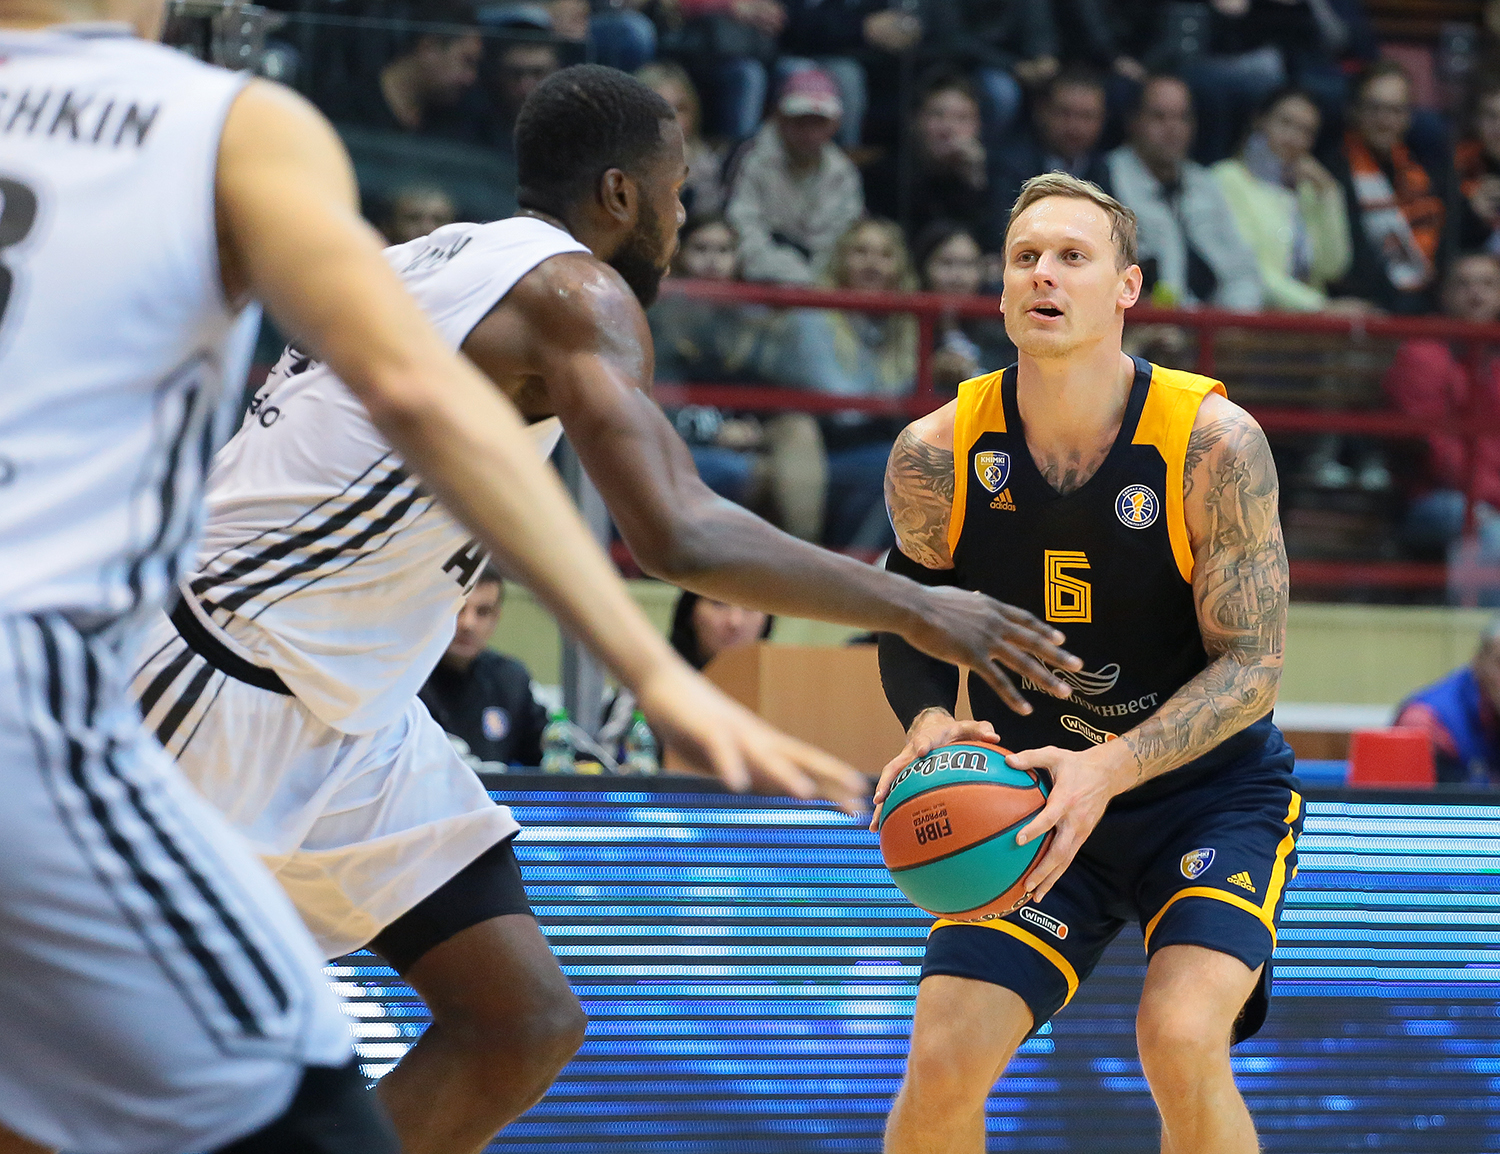 Khimki beat Avtodor and stay undefeated